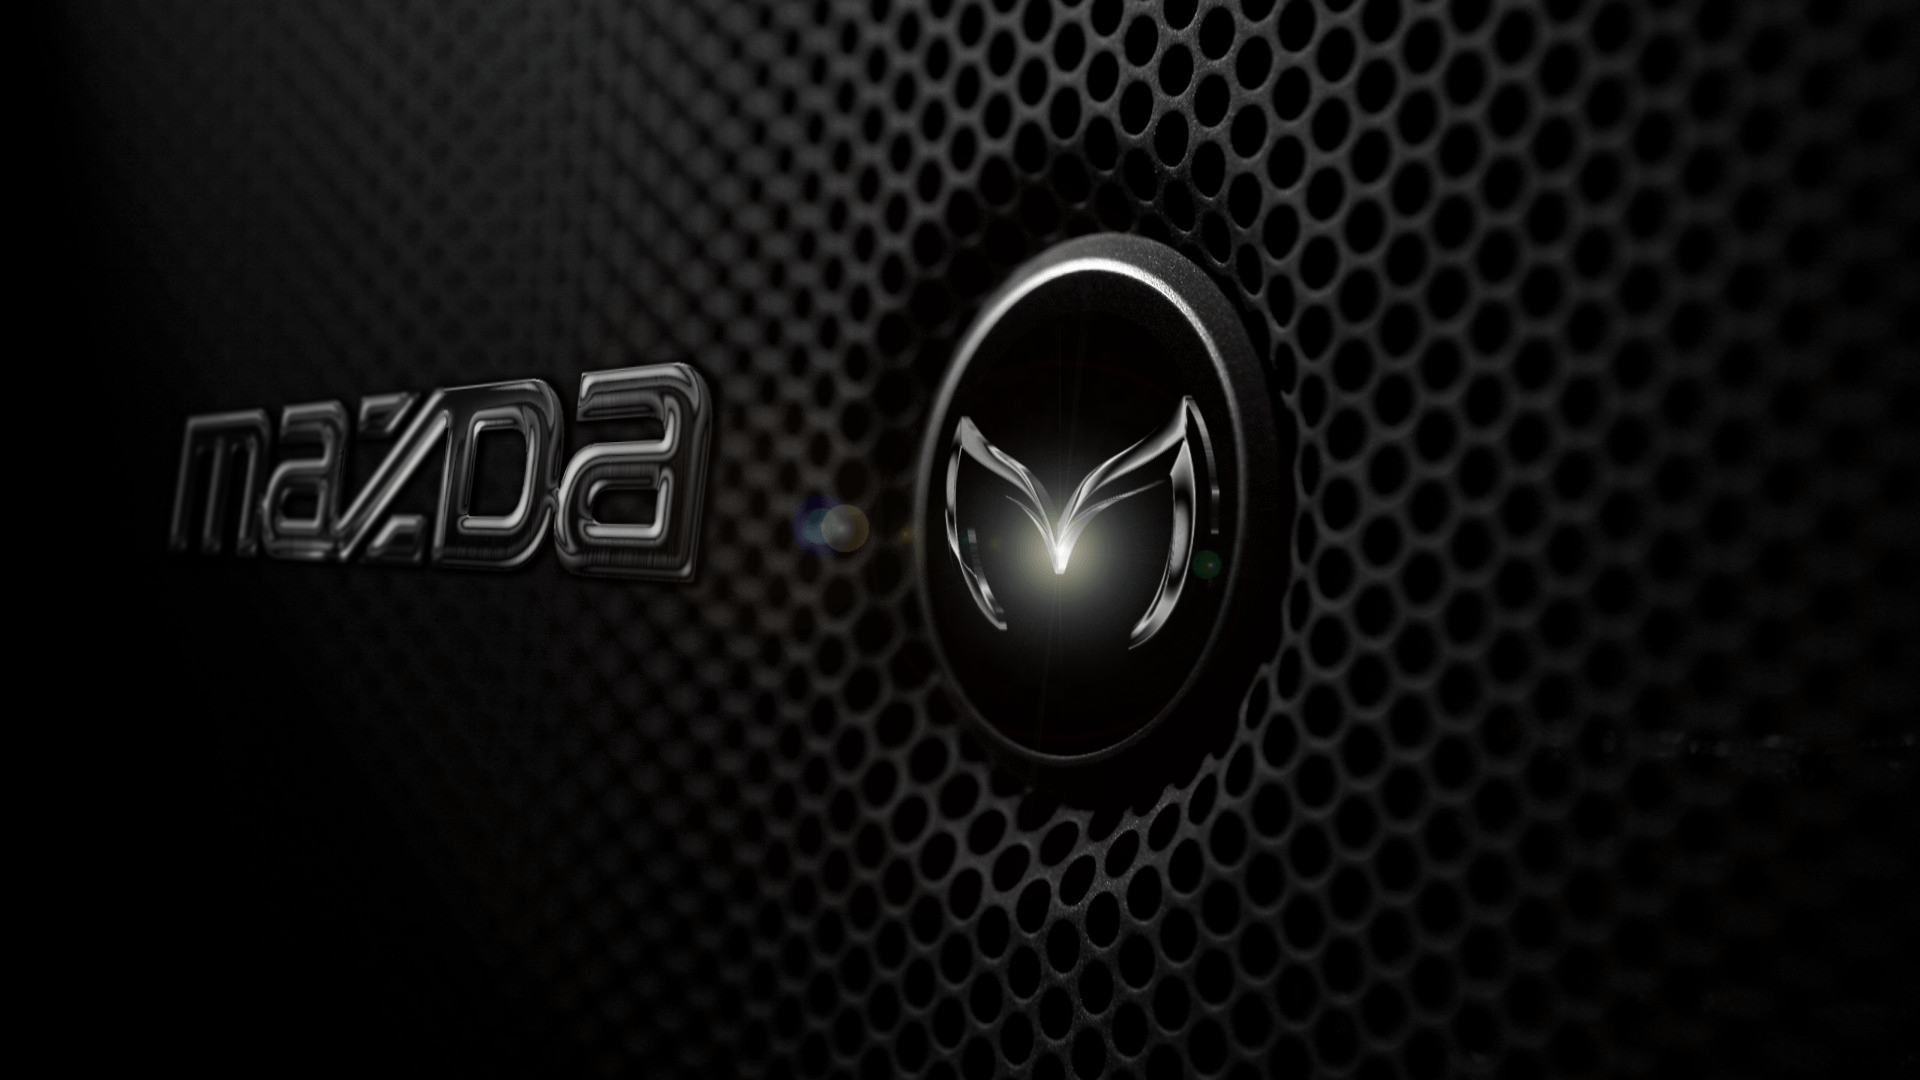 Mazda Wallpapers HD Photos, Wallpapers and other Image